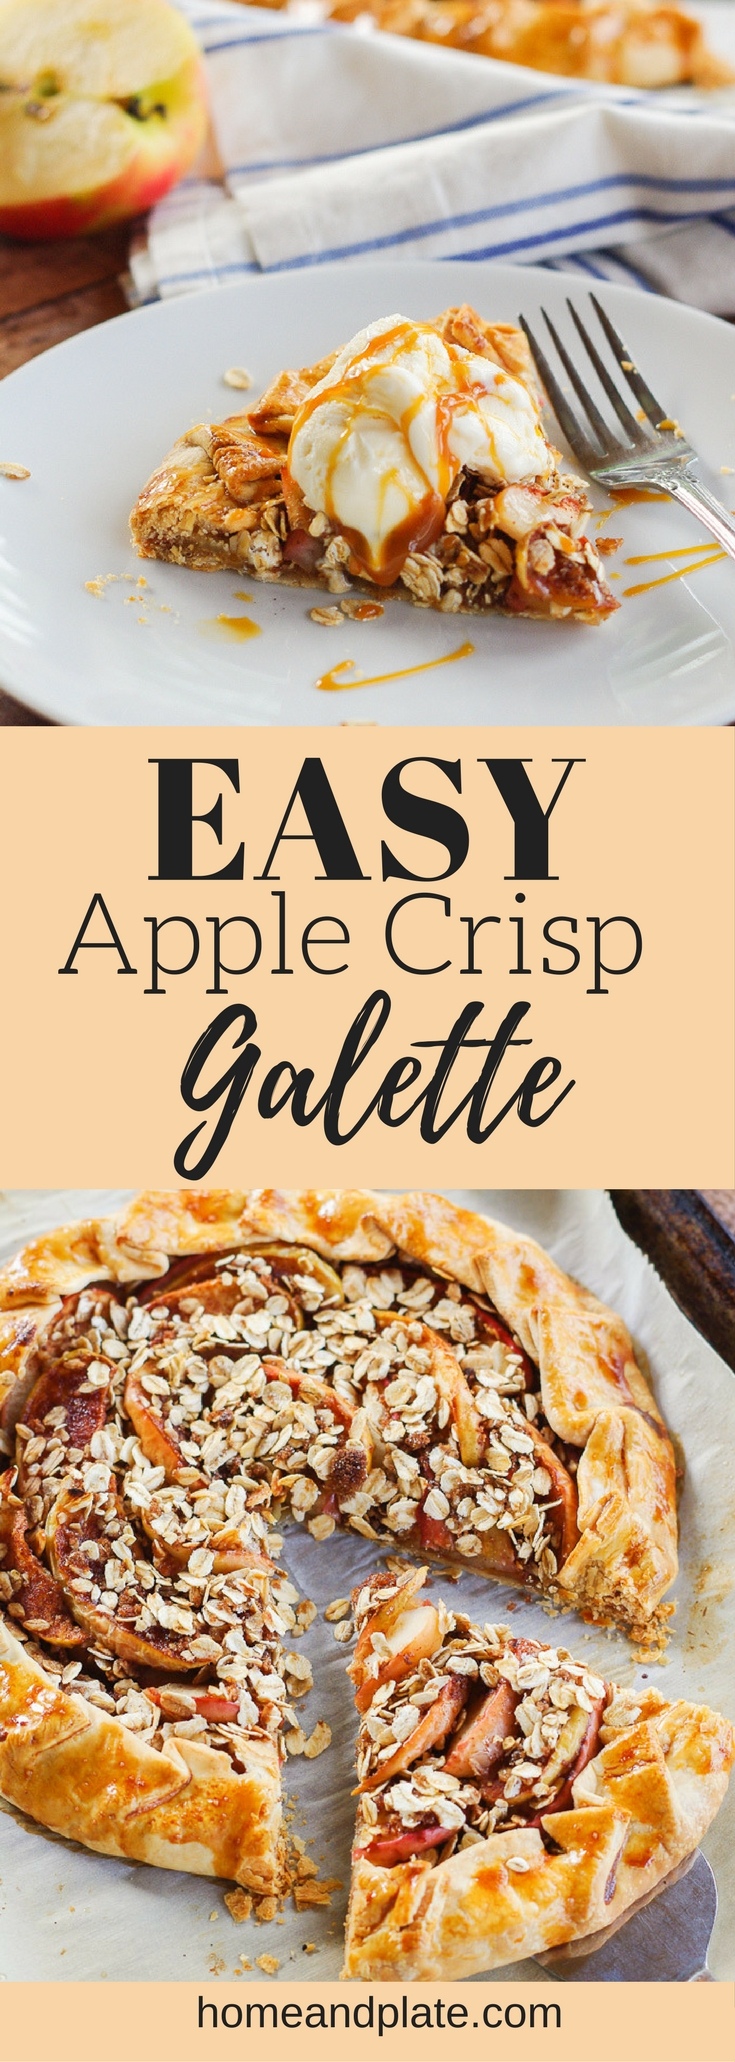 Easy Apple Crisp Galette| As delicious as mom's apple pie but easier! This easy apple crisp galette is the ideal fall dessert. | www.homeandplate.com | #apples #galette #tart #crisp